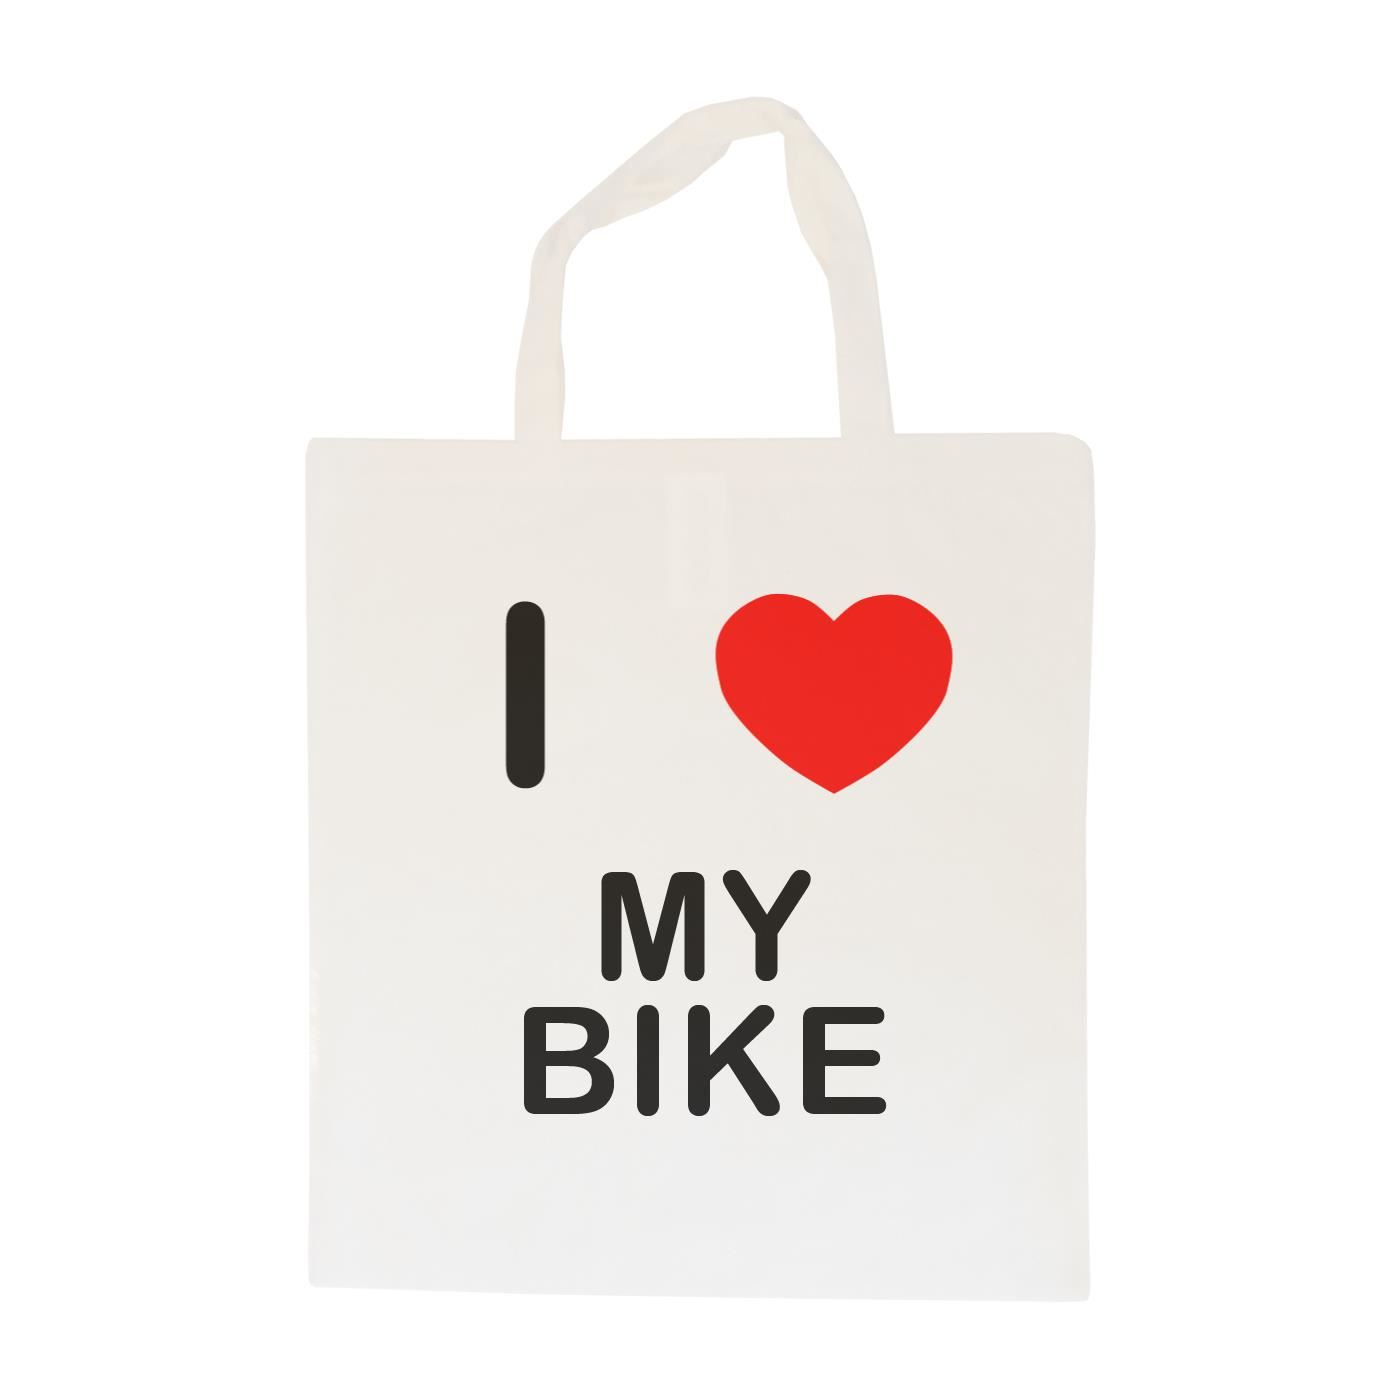 I Love My Bike - Cotton Bag | Size choice Tote, Shopper or Sling